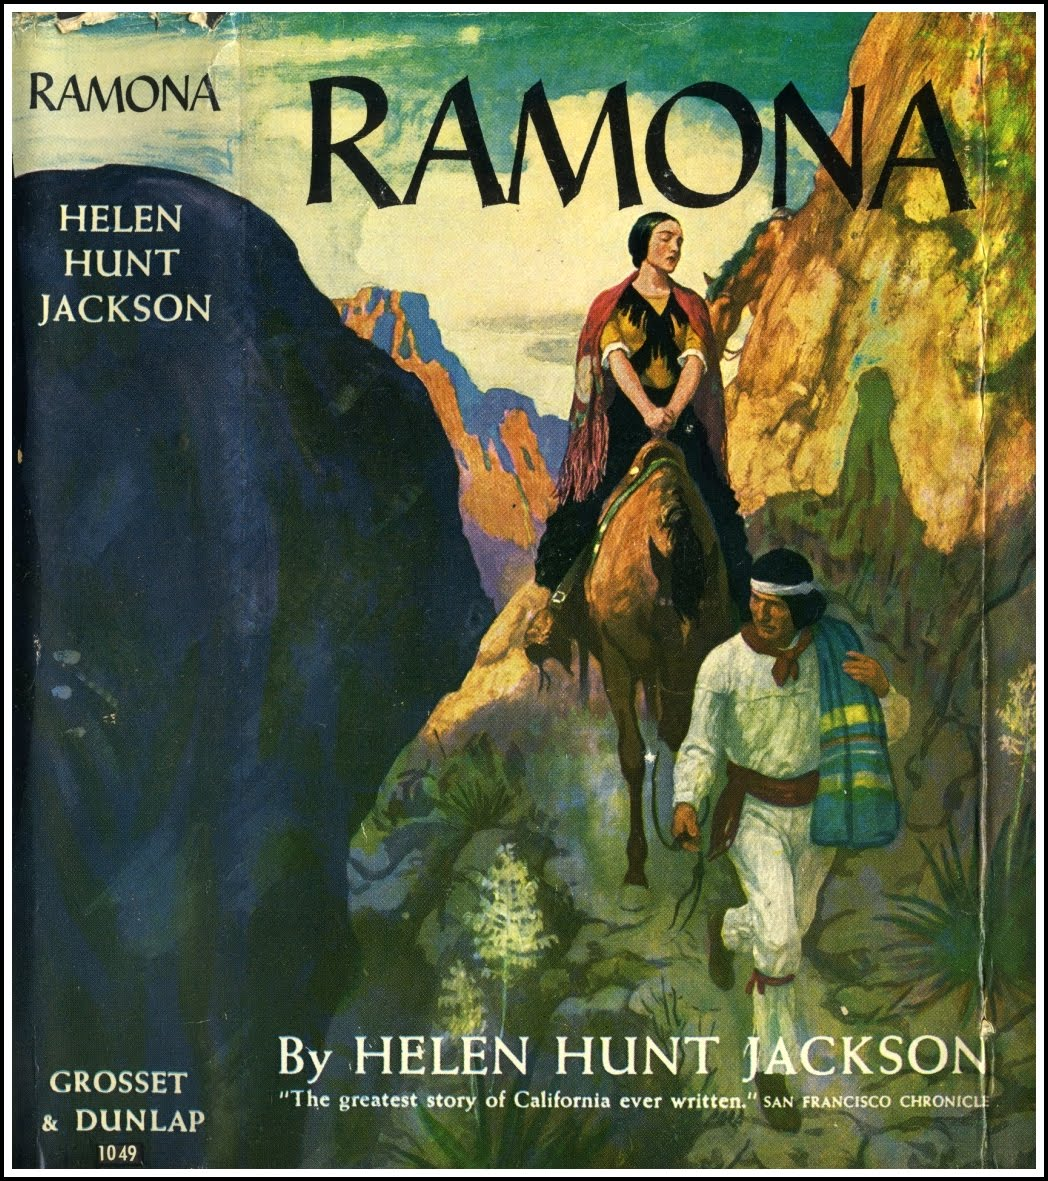 ramonas world book report All about ramona characters: poster book report for beezus and ramona: discussion questions reading guide: the world of beverly cleary.